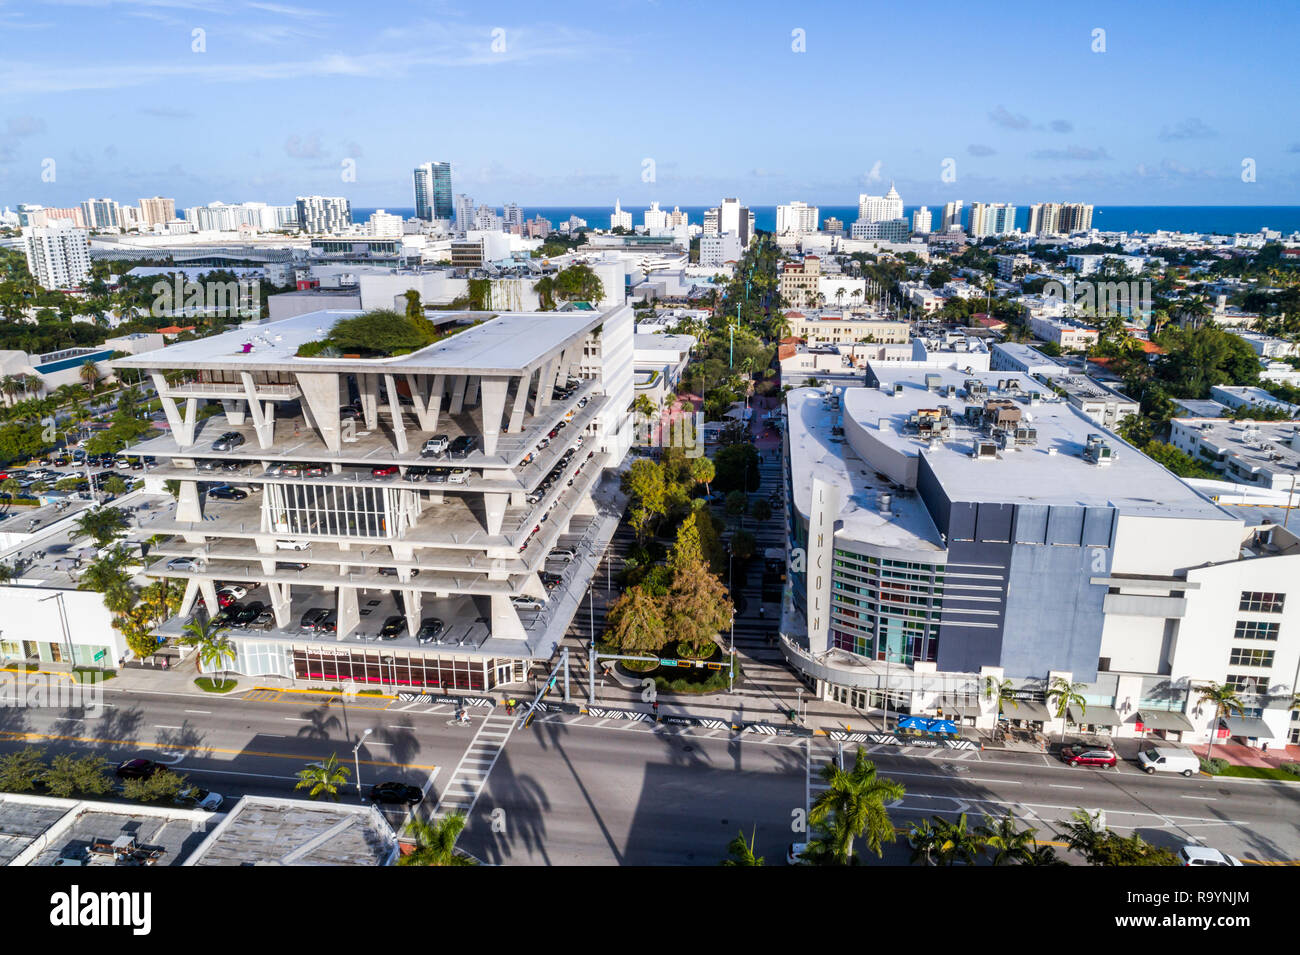 Miami Beach, Florida Alton Road Fußgängerzone Lincoln Road Mall Shopping LAZ Parking Garage 1111 Lincoln Kino Regal Cinemas South Beach 18 und IMAX Stockbild